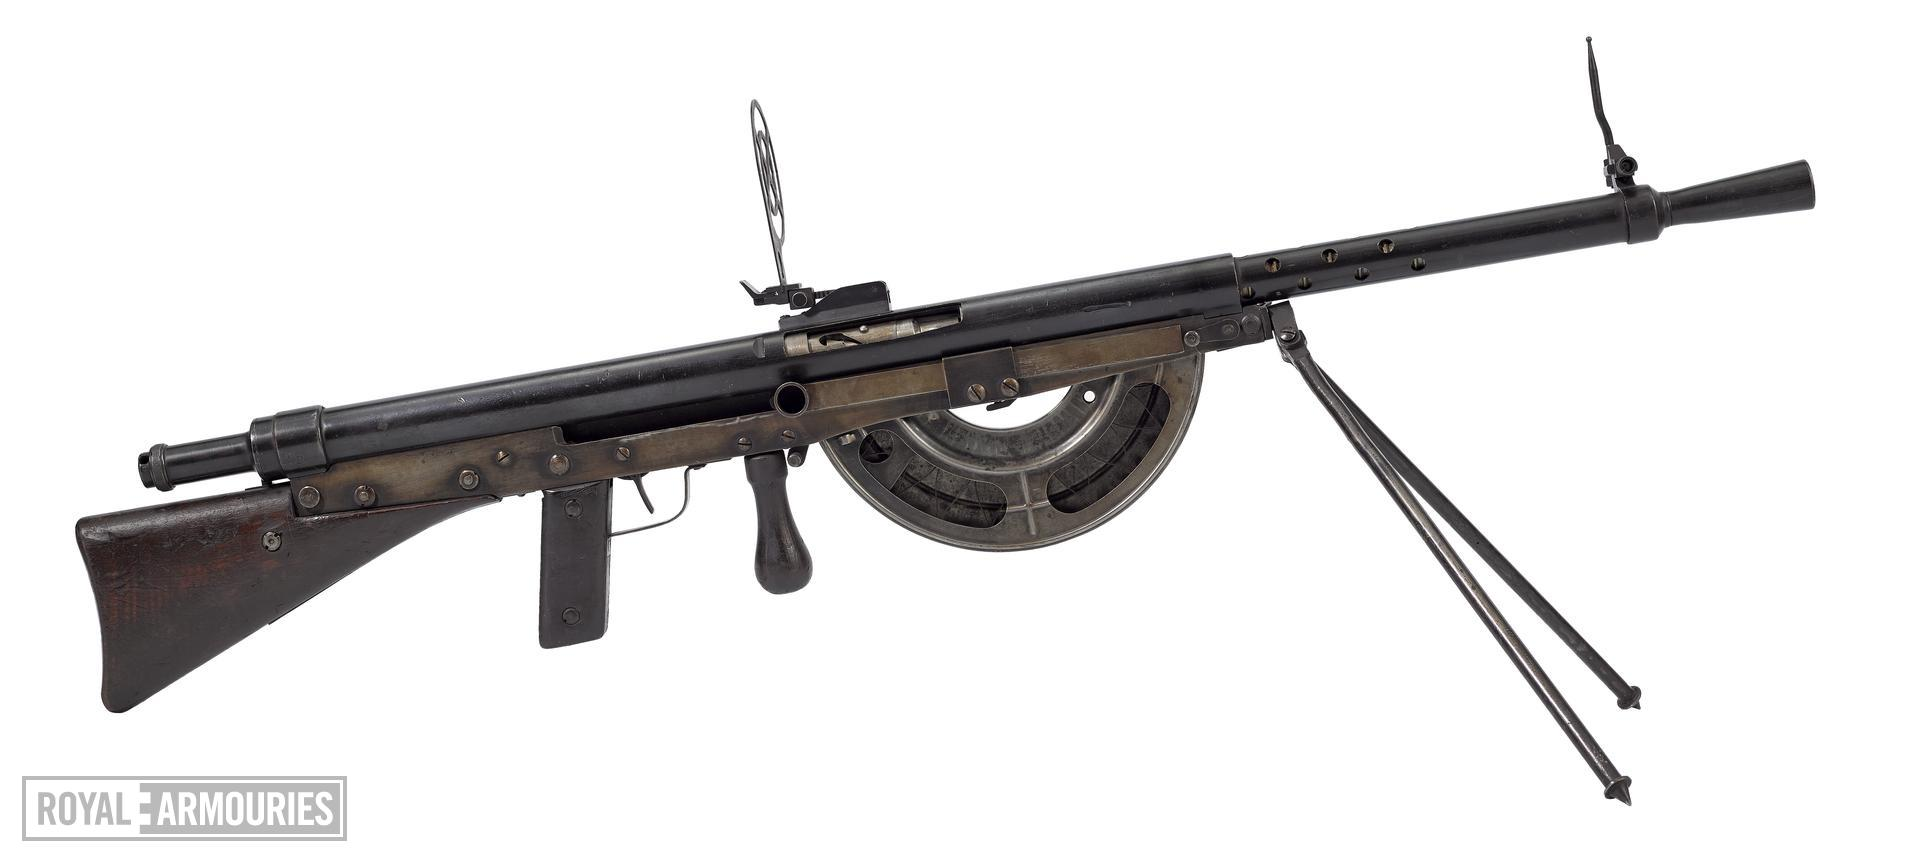 CSRG Modèle 1915 'Chauchat' machine rifle - Arms of the First World War